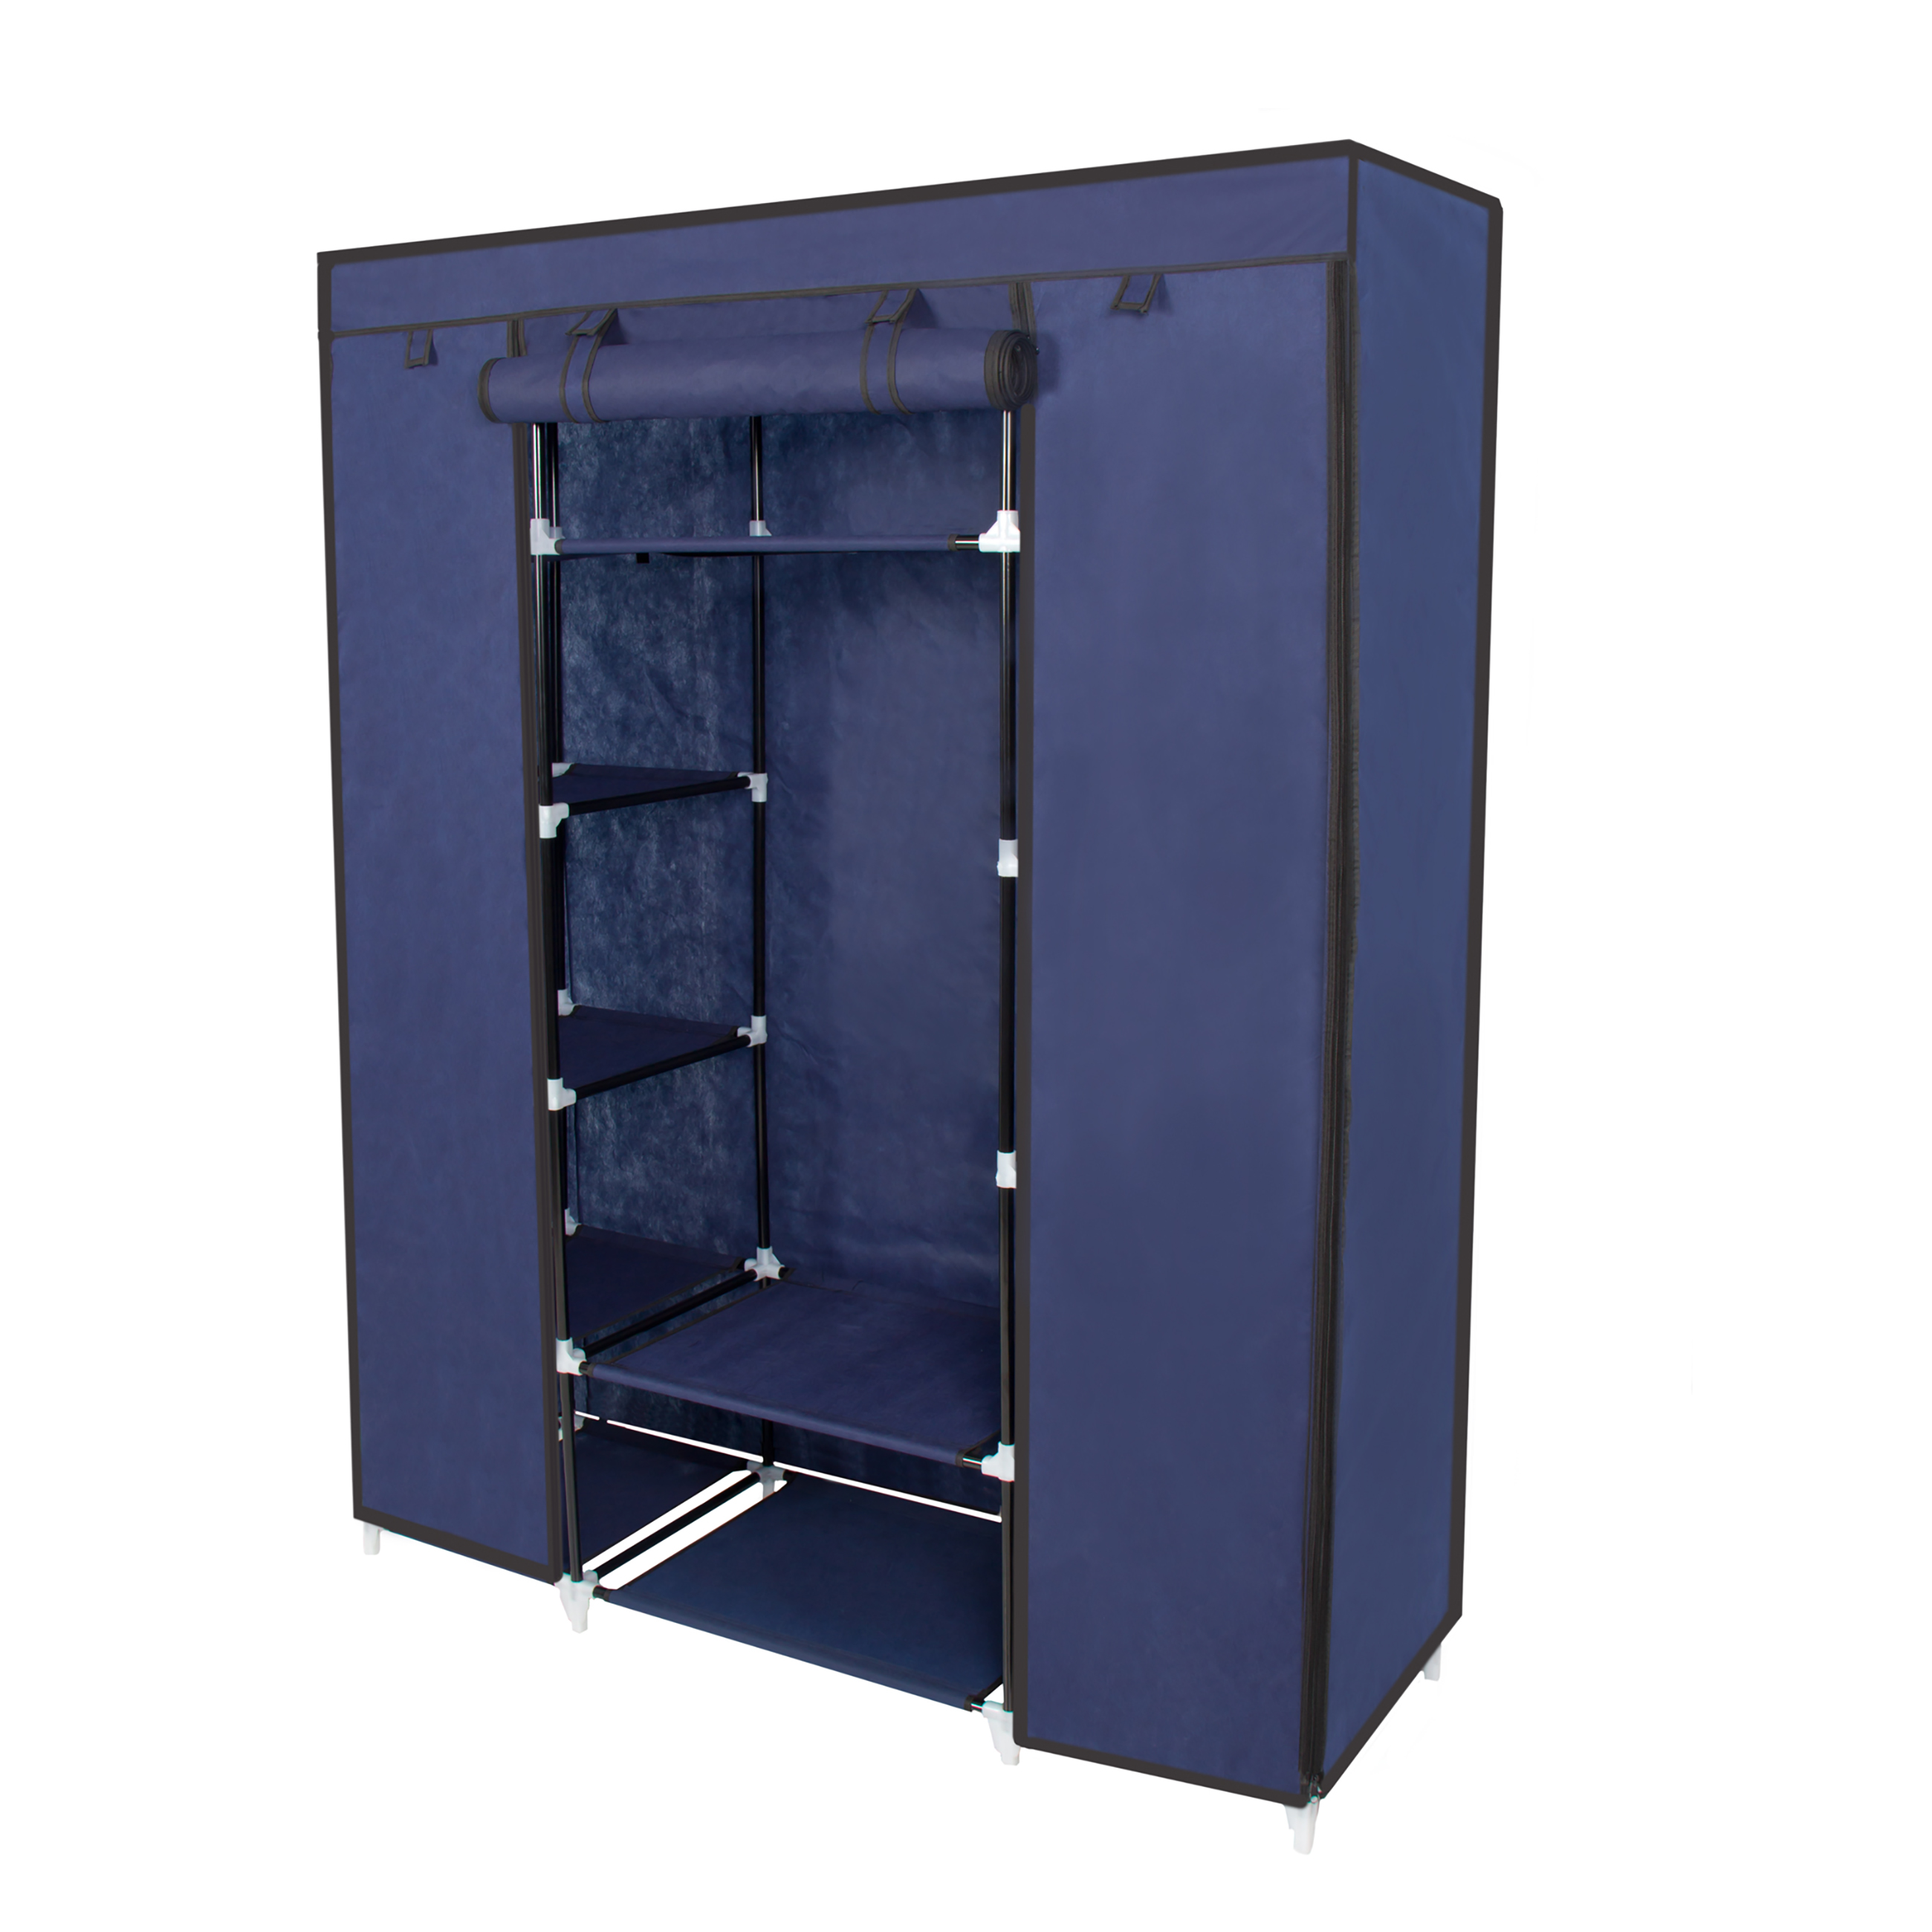 53    Portable Closet Storage Organizer Wardrobe Clothes Rack With Shelves  Blue - Walmart.com